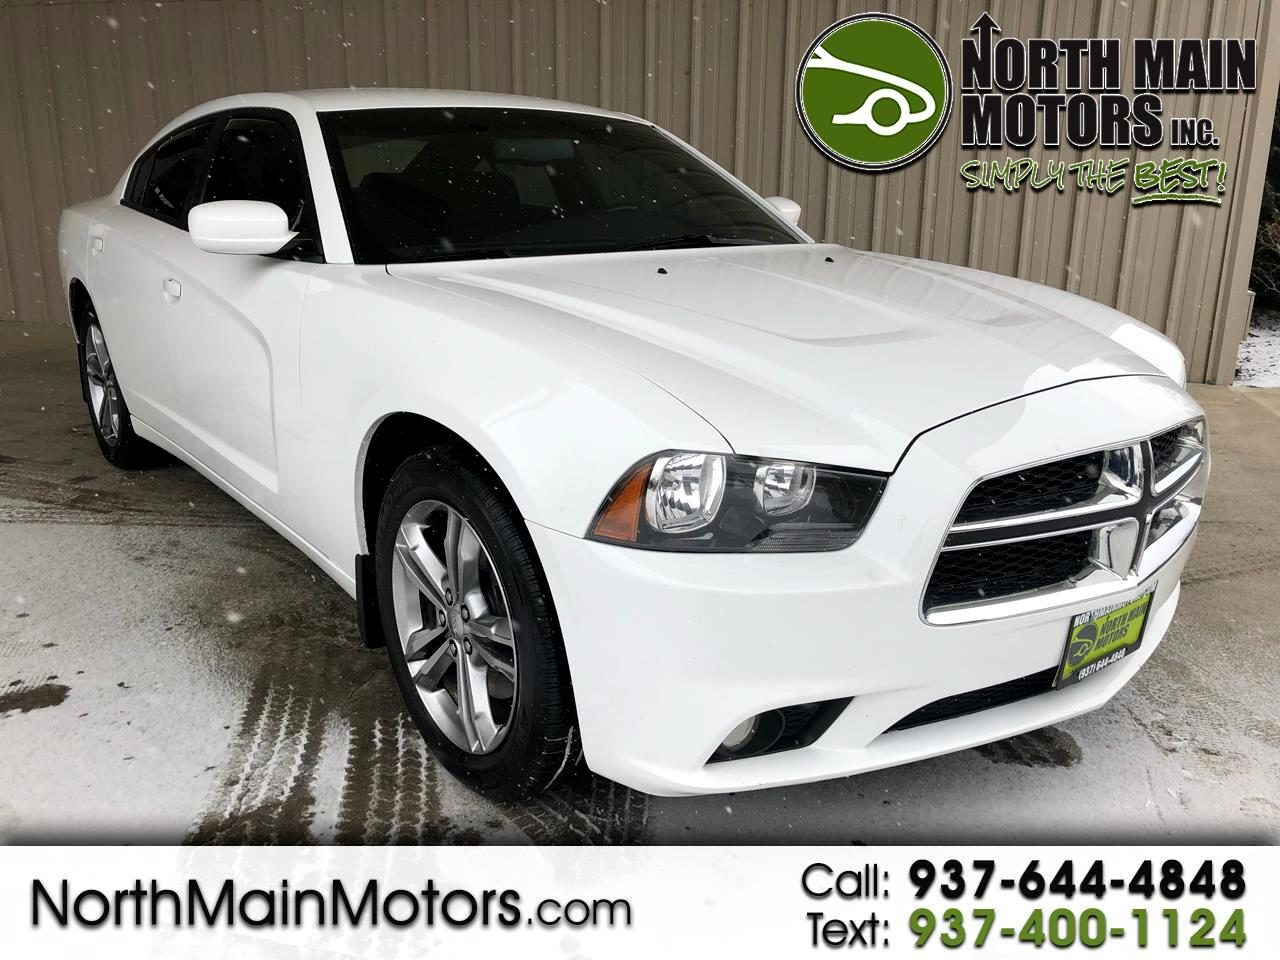 2013 Dodge Charger 4dr Sdn SXT AWD